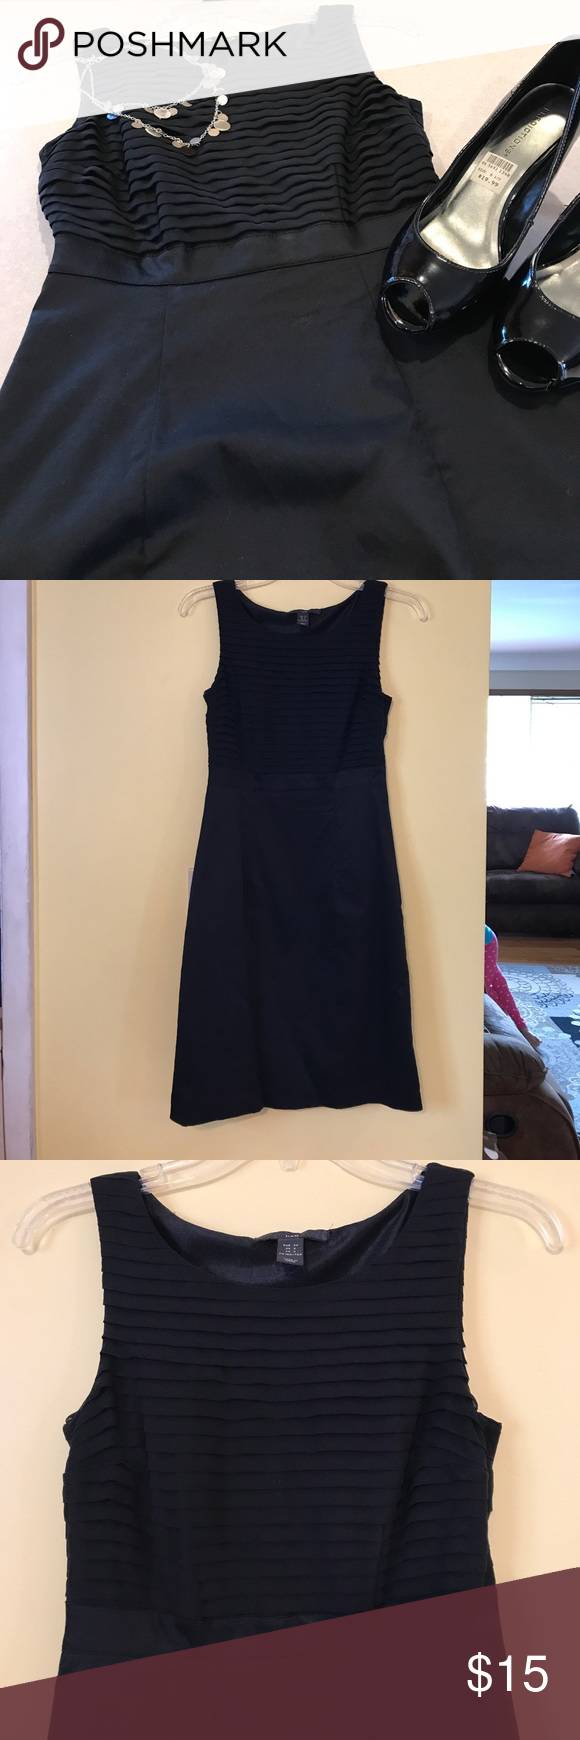 Black dress very -  Stunning Black Dress Very Nice Little Black Dress In Excellent Condition Only